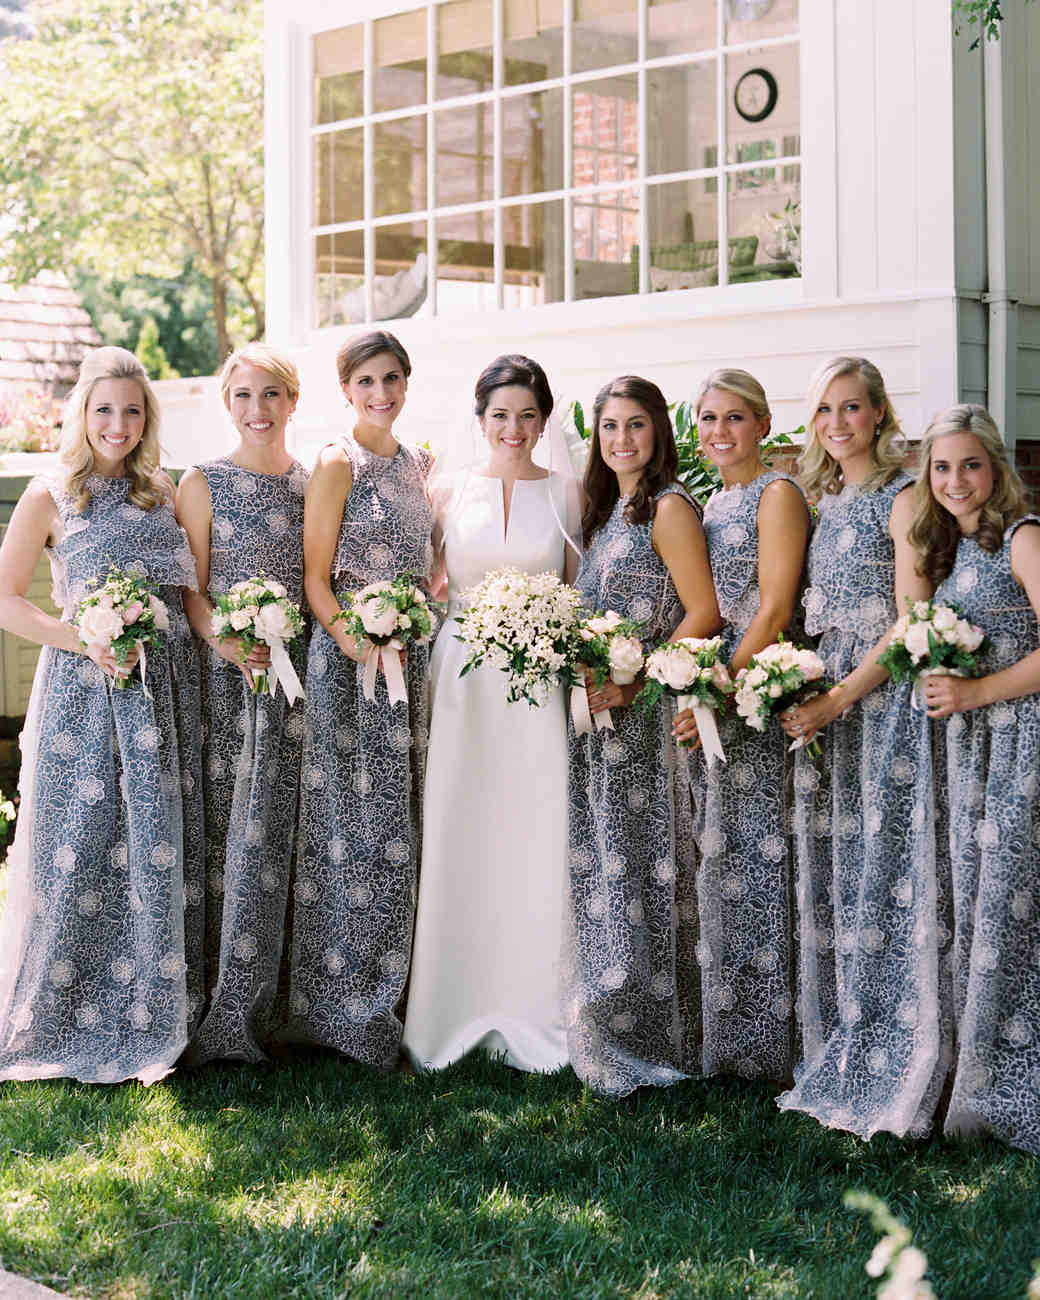 A Timeless Spring Wedding In Washington D.C.